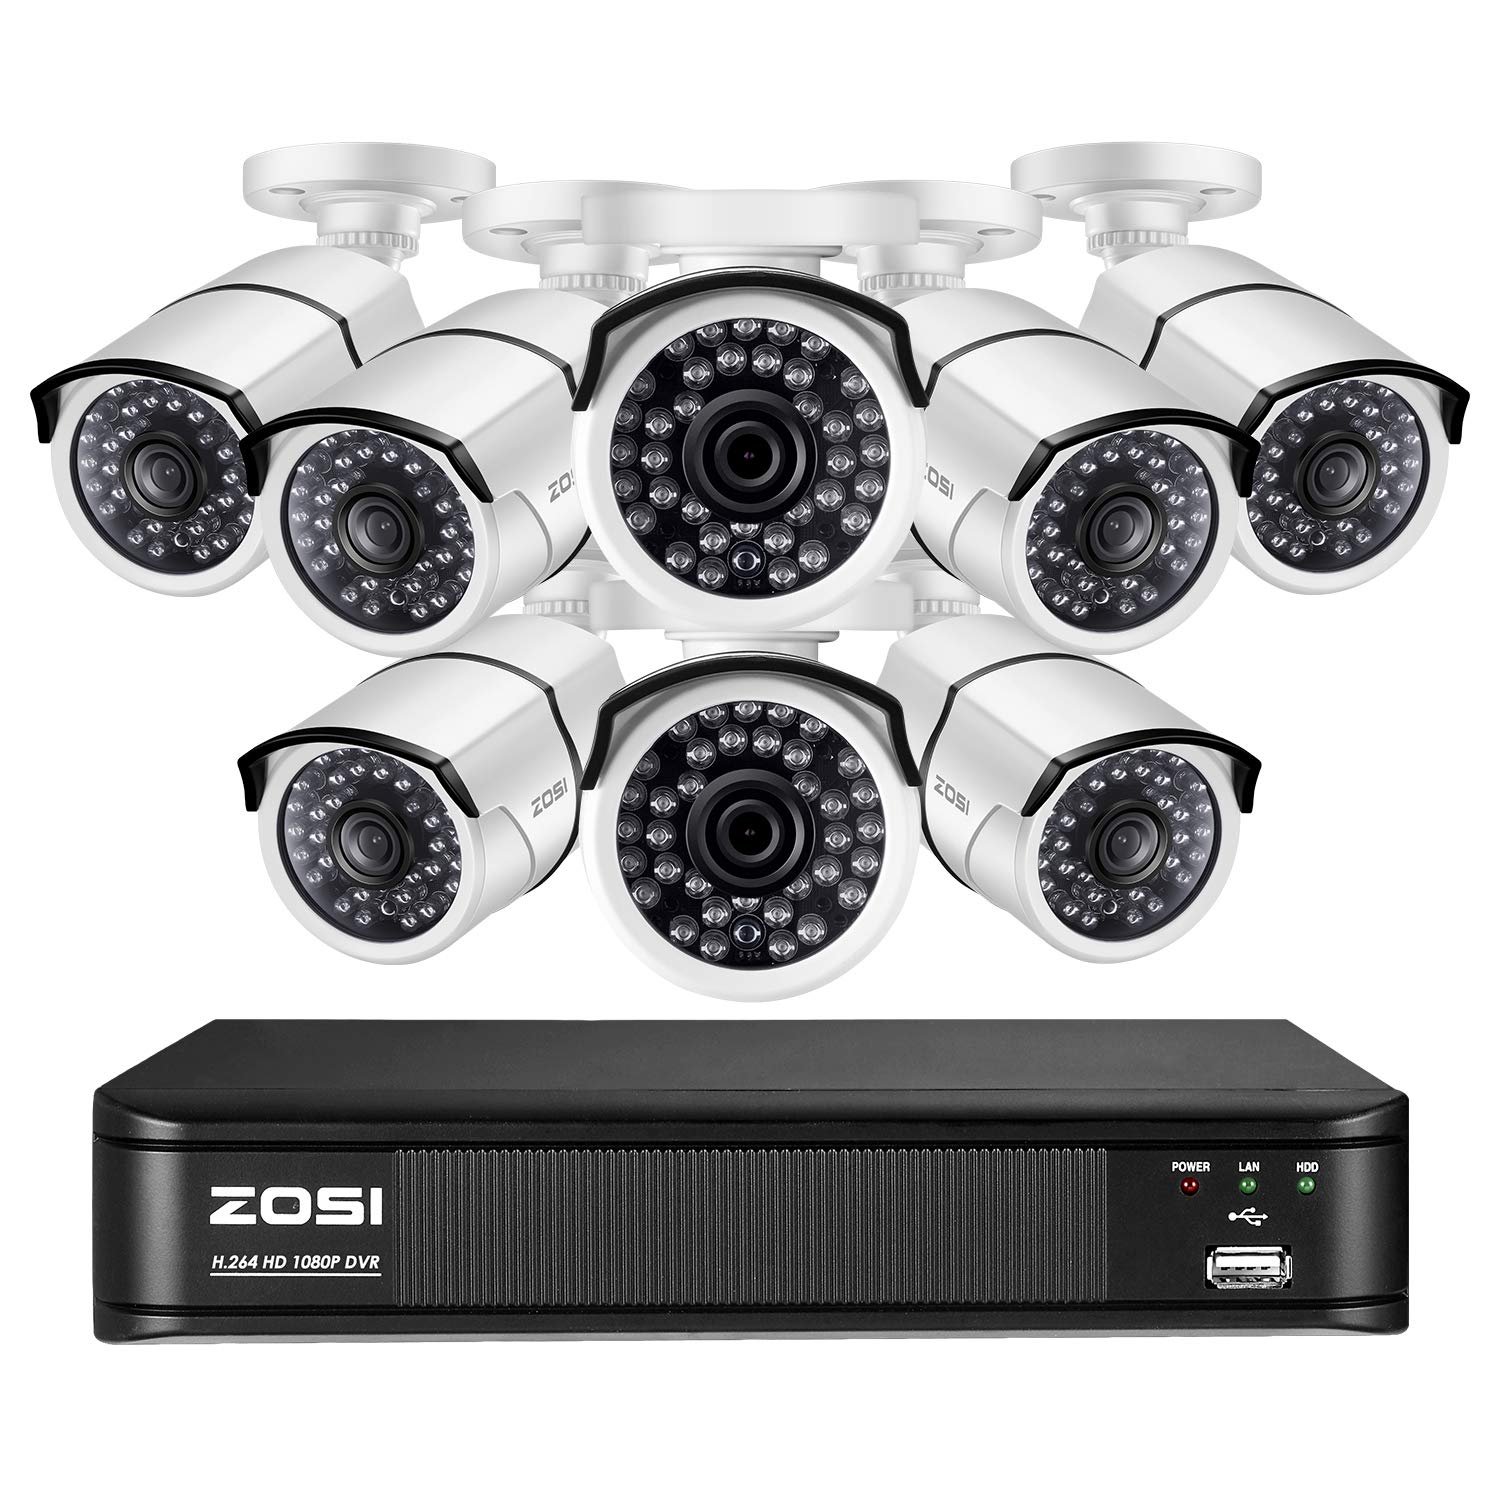 ZOSI 1080P Video Surveillance Home Security Camera System, 8 Channel CCTV DVR Recorder with 8 x 1080p Bullet Camera Outdoor Indoor, Long Night Vision, Remote Accsee, Motion Detection No HDD